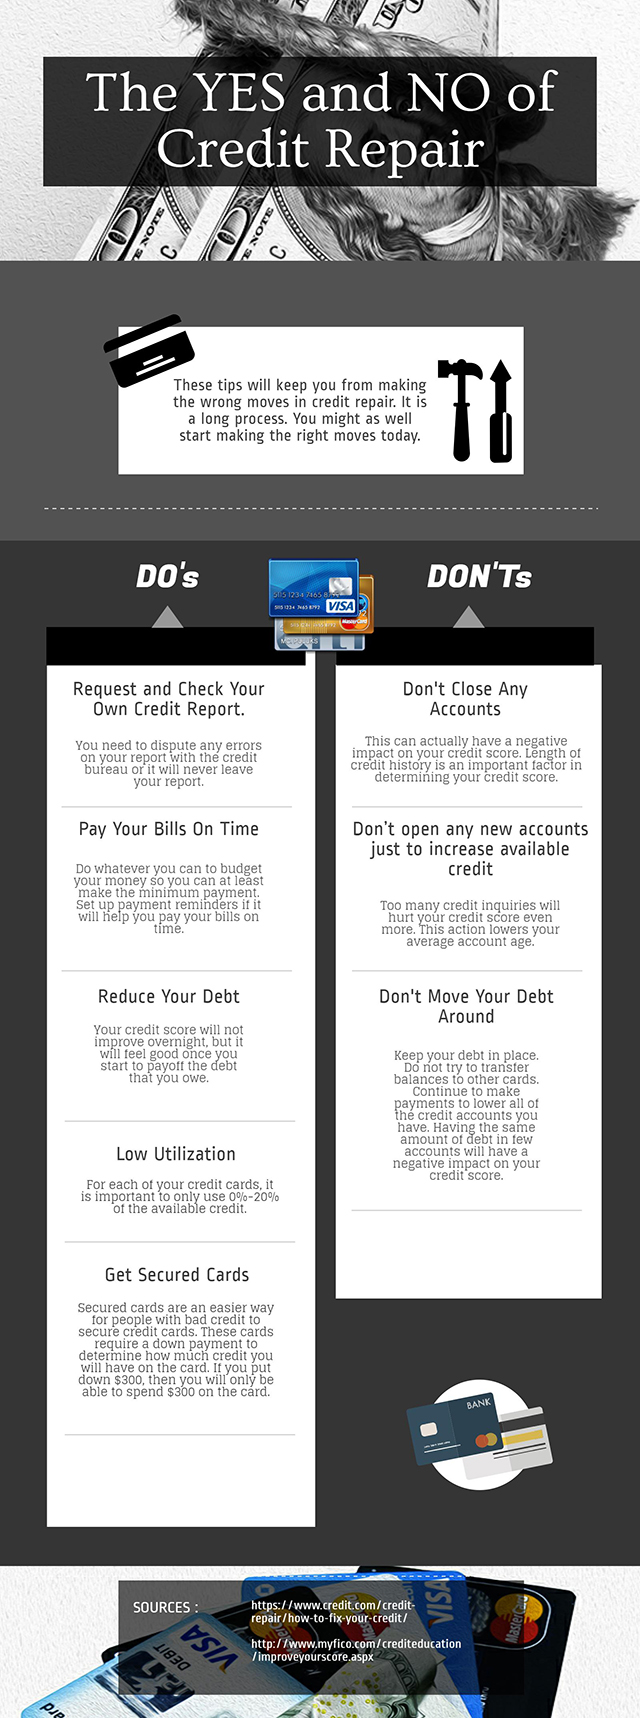 What To Do While In Credit Repair - Infographic